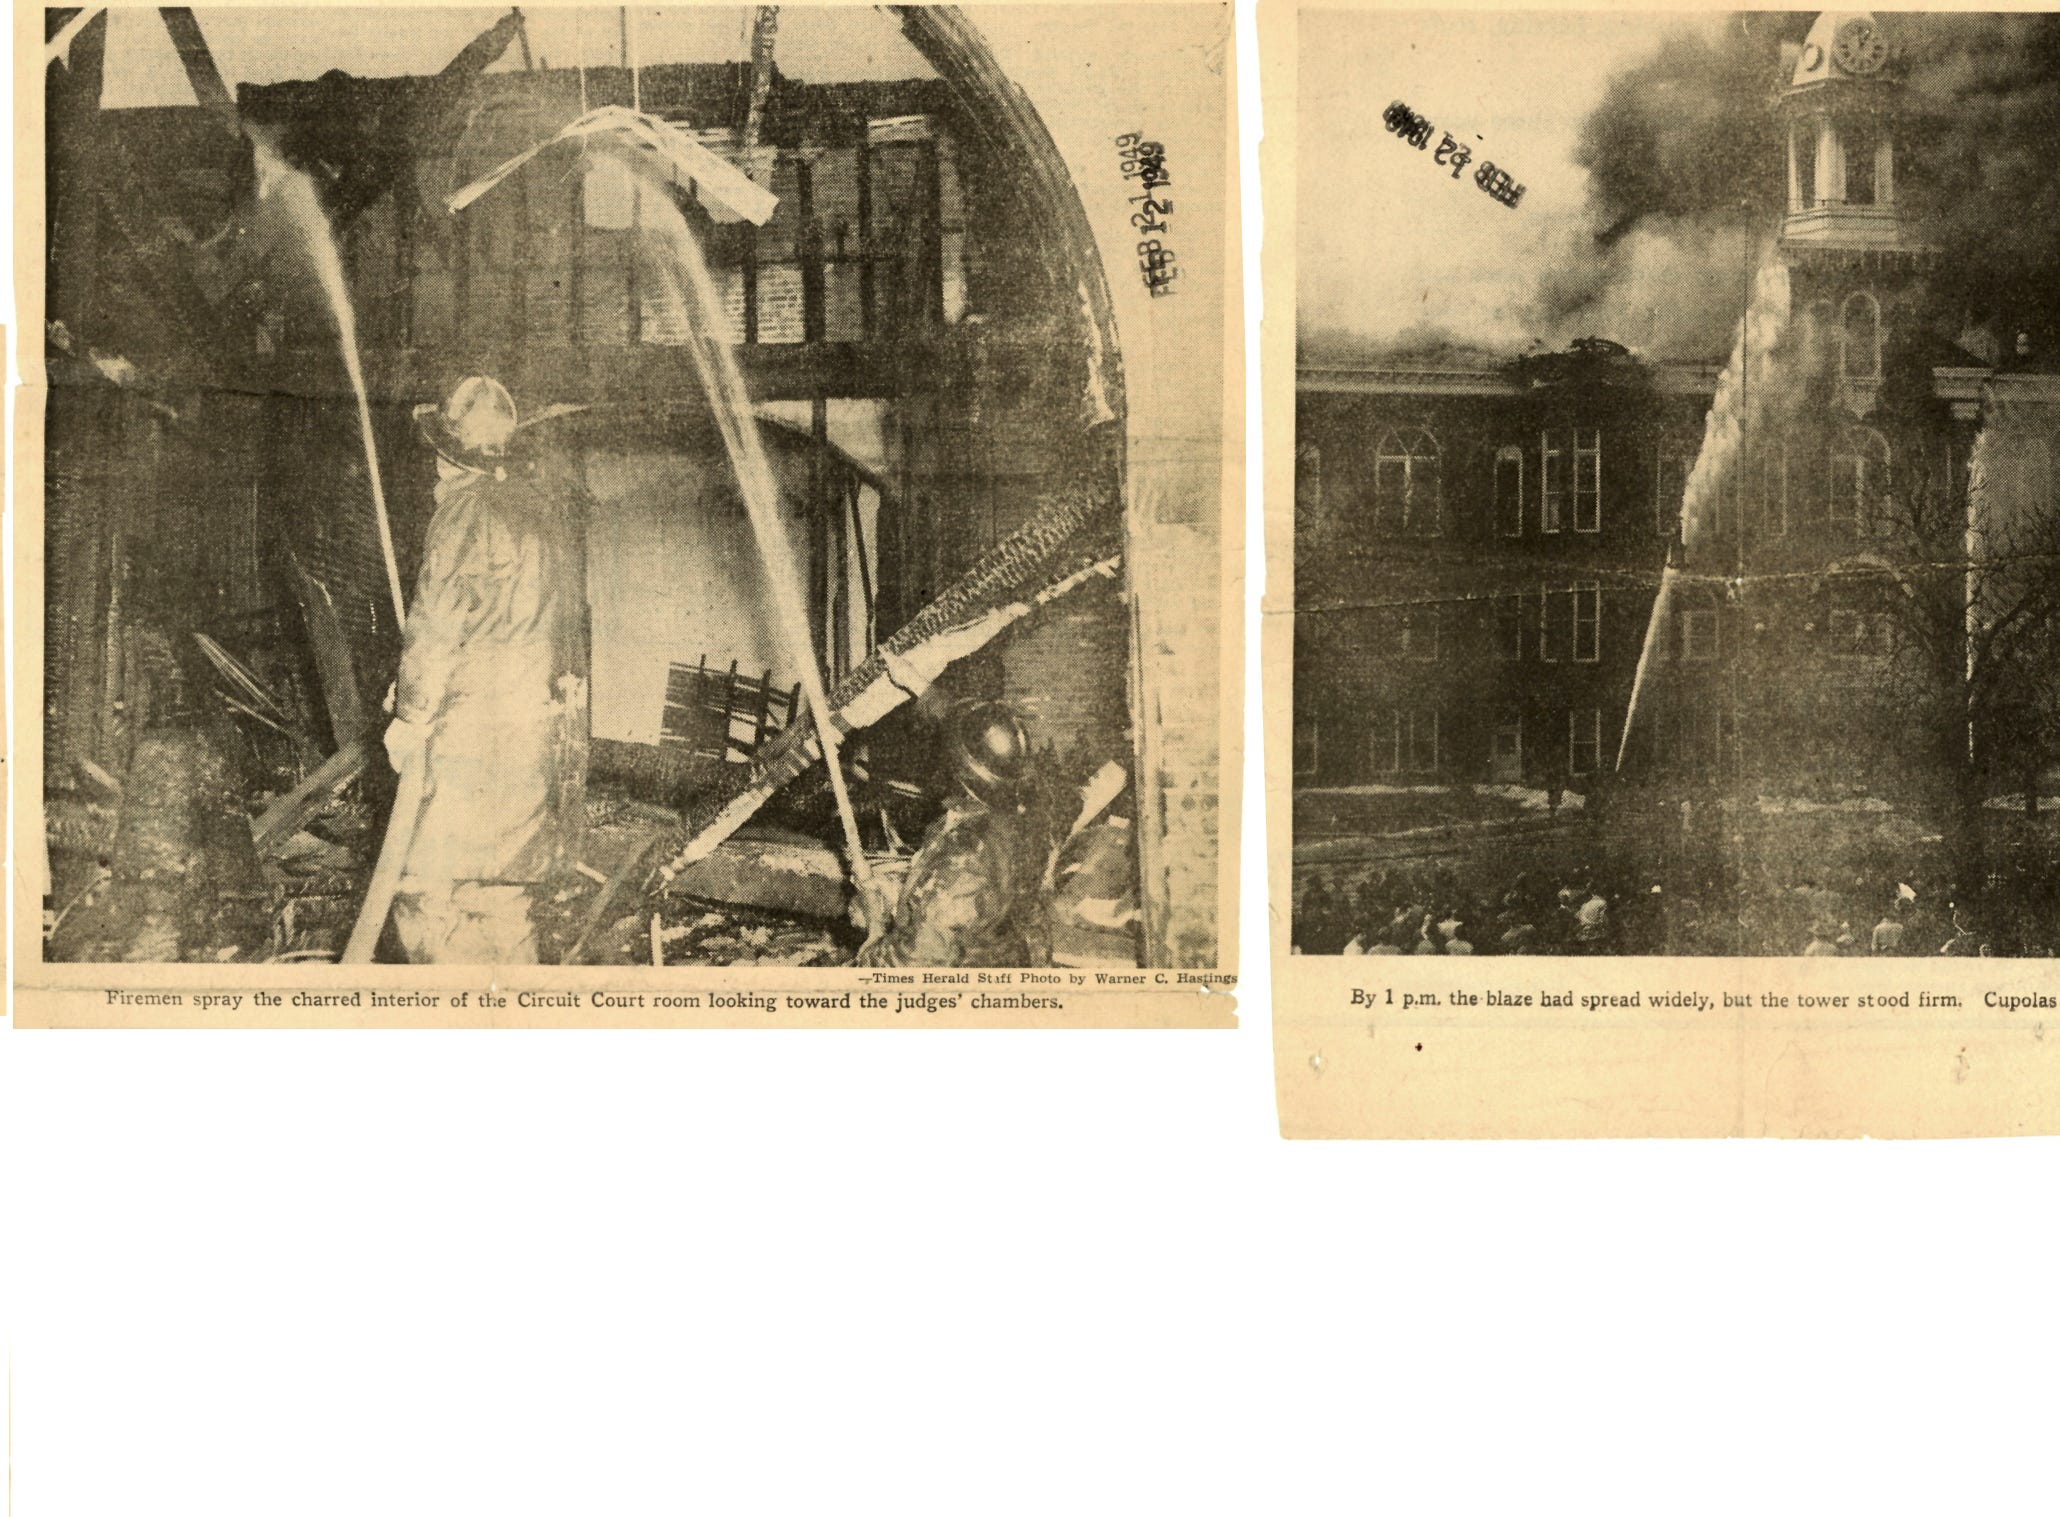 Several photos that ran on the front page of the Times Herald on Feb. 13, 1949 show the destruction of City Hall, and the firefighters trying to contain the blaze.